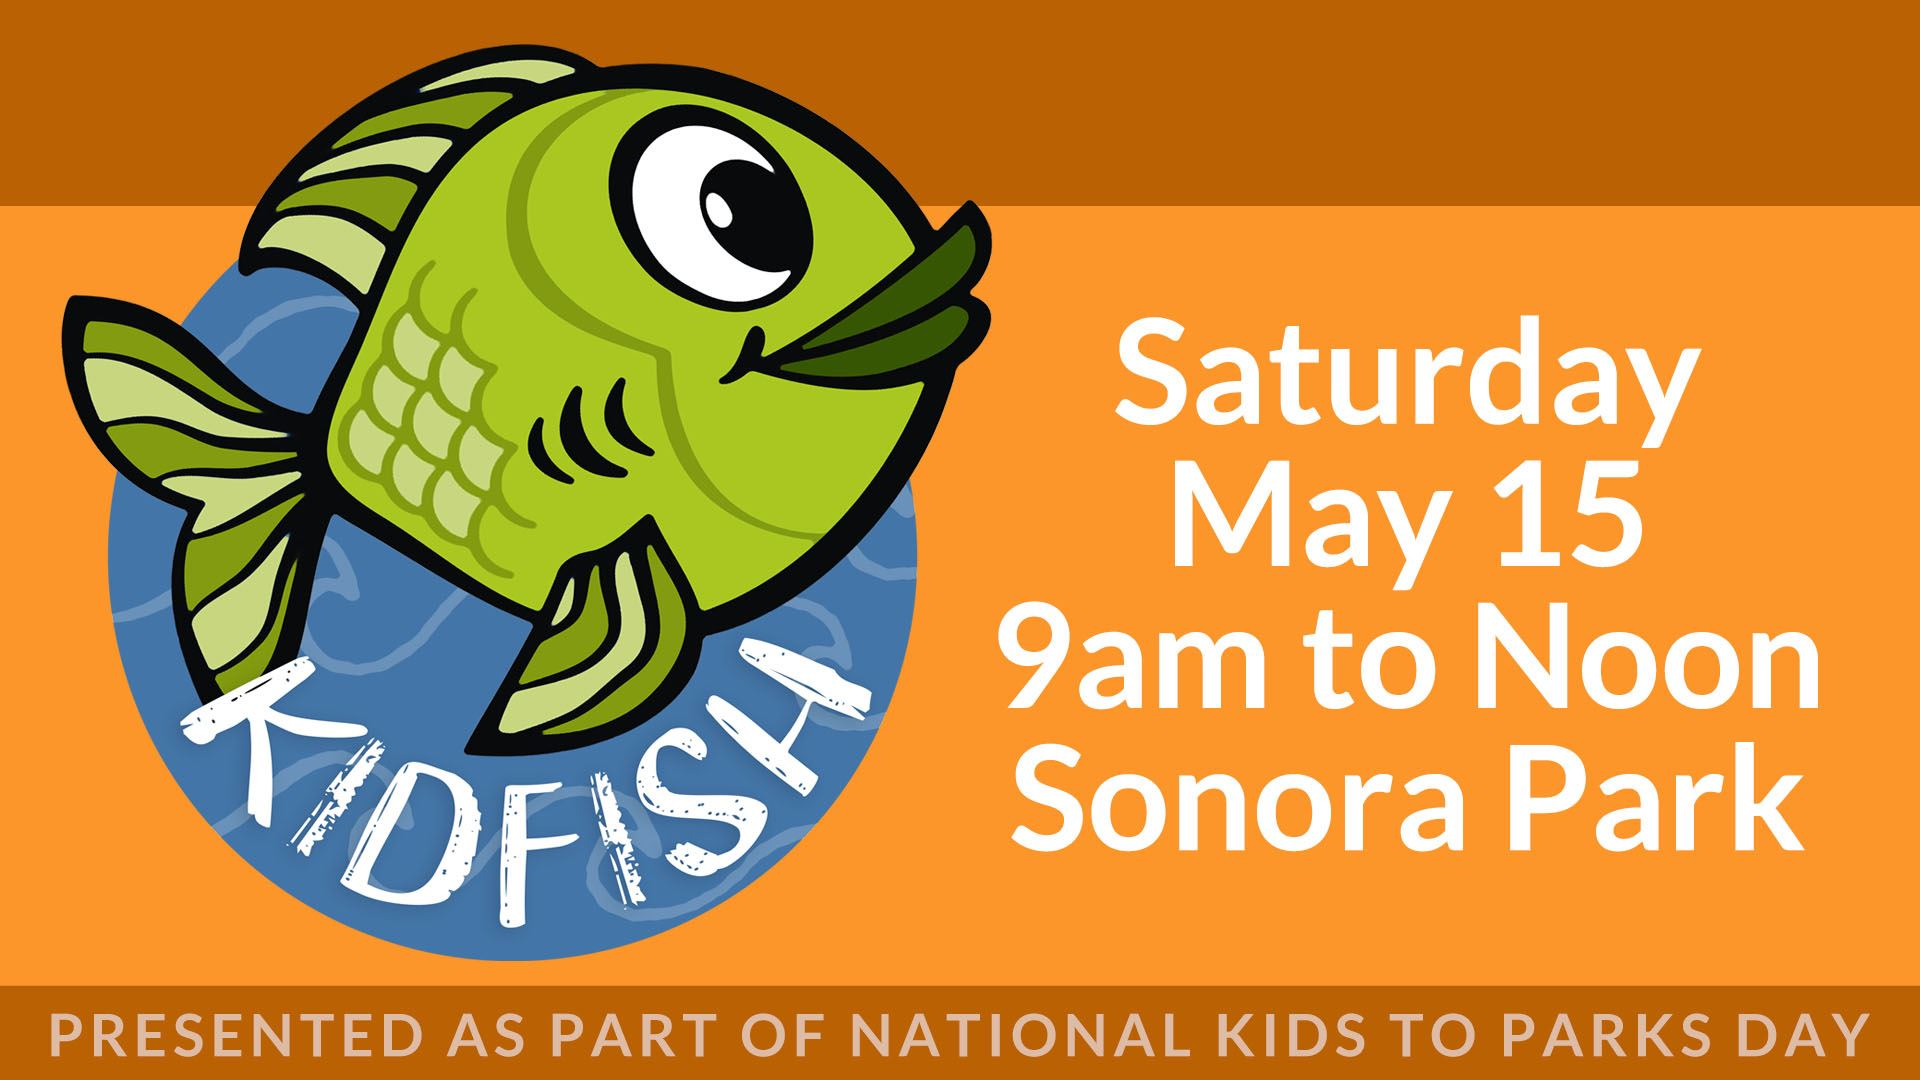 KIDFISH at Sonora Park Saturday, May 15 from 9am to Noon